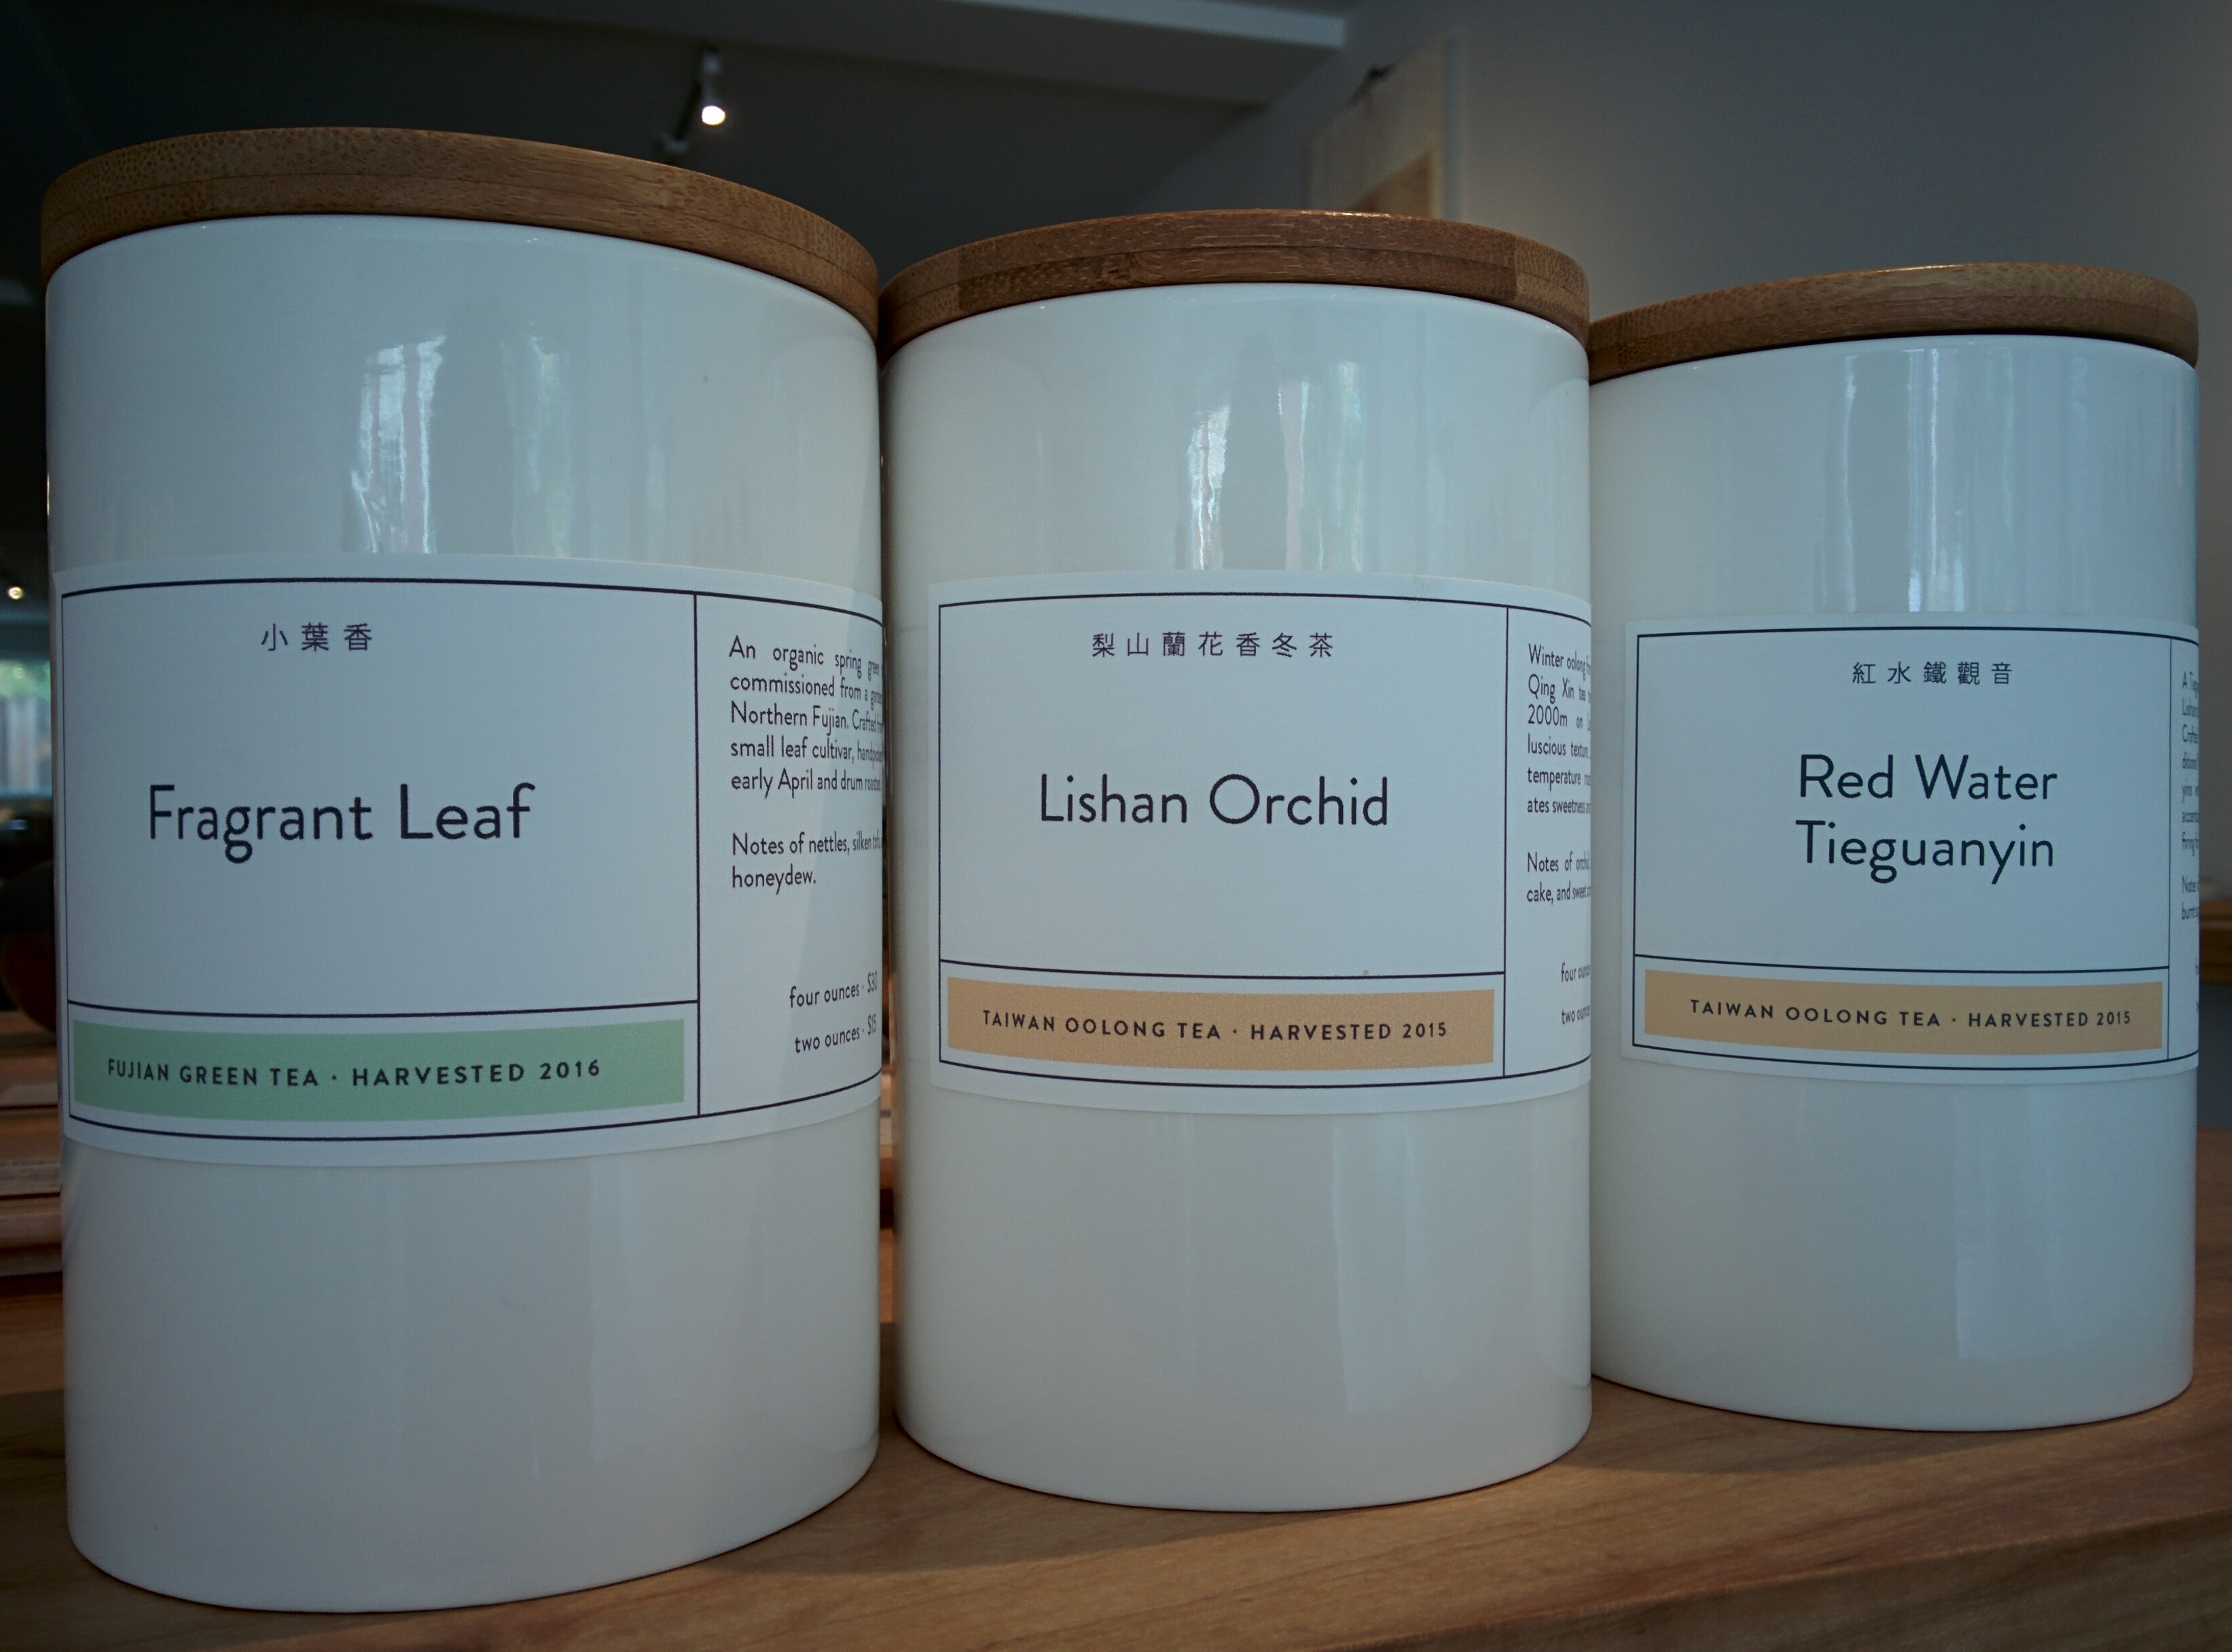 Song Tea's Fragrant Leaf Green Tea, Lishan Orchid oolong, and Red Water Tieguanyin oolong